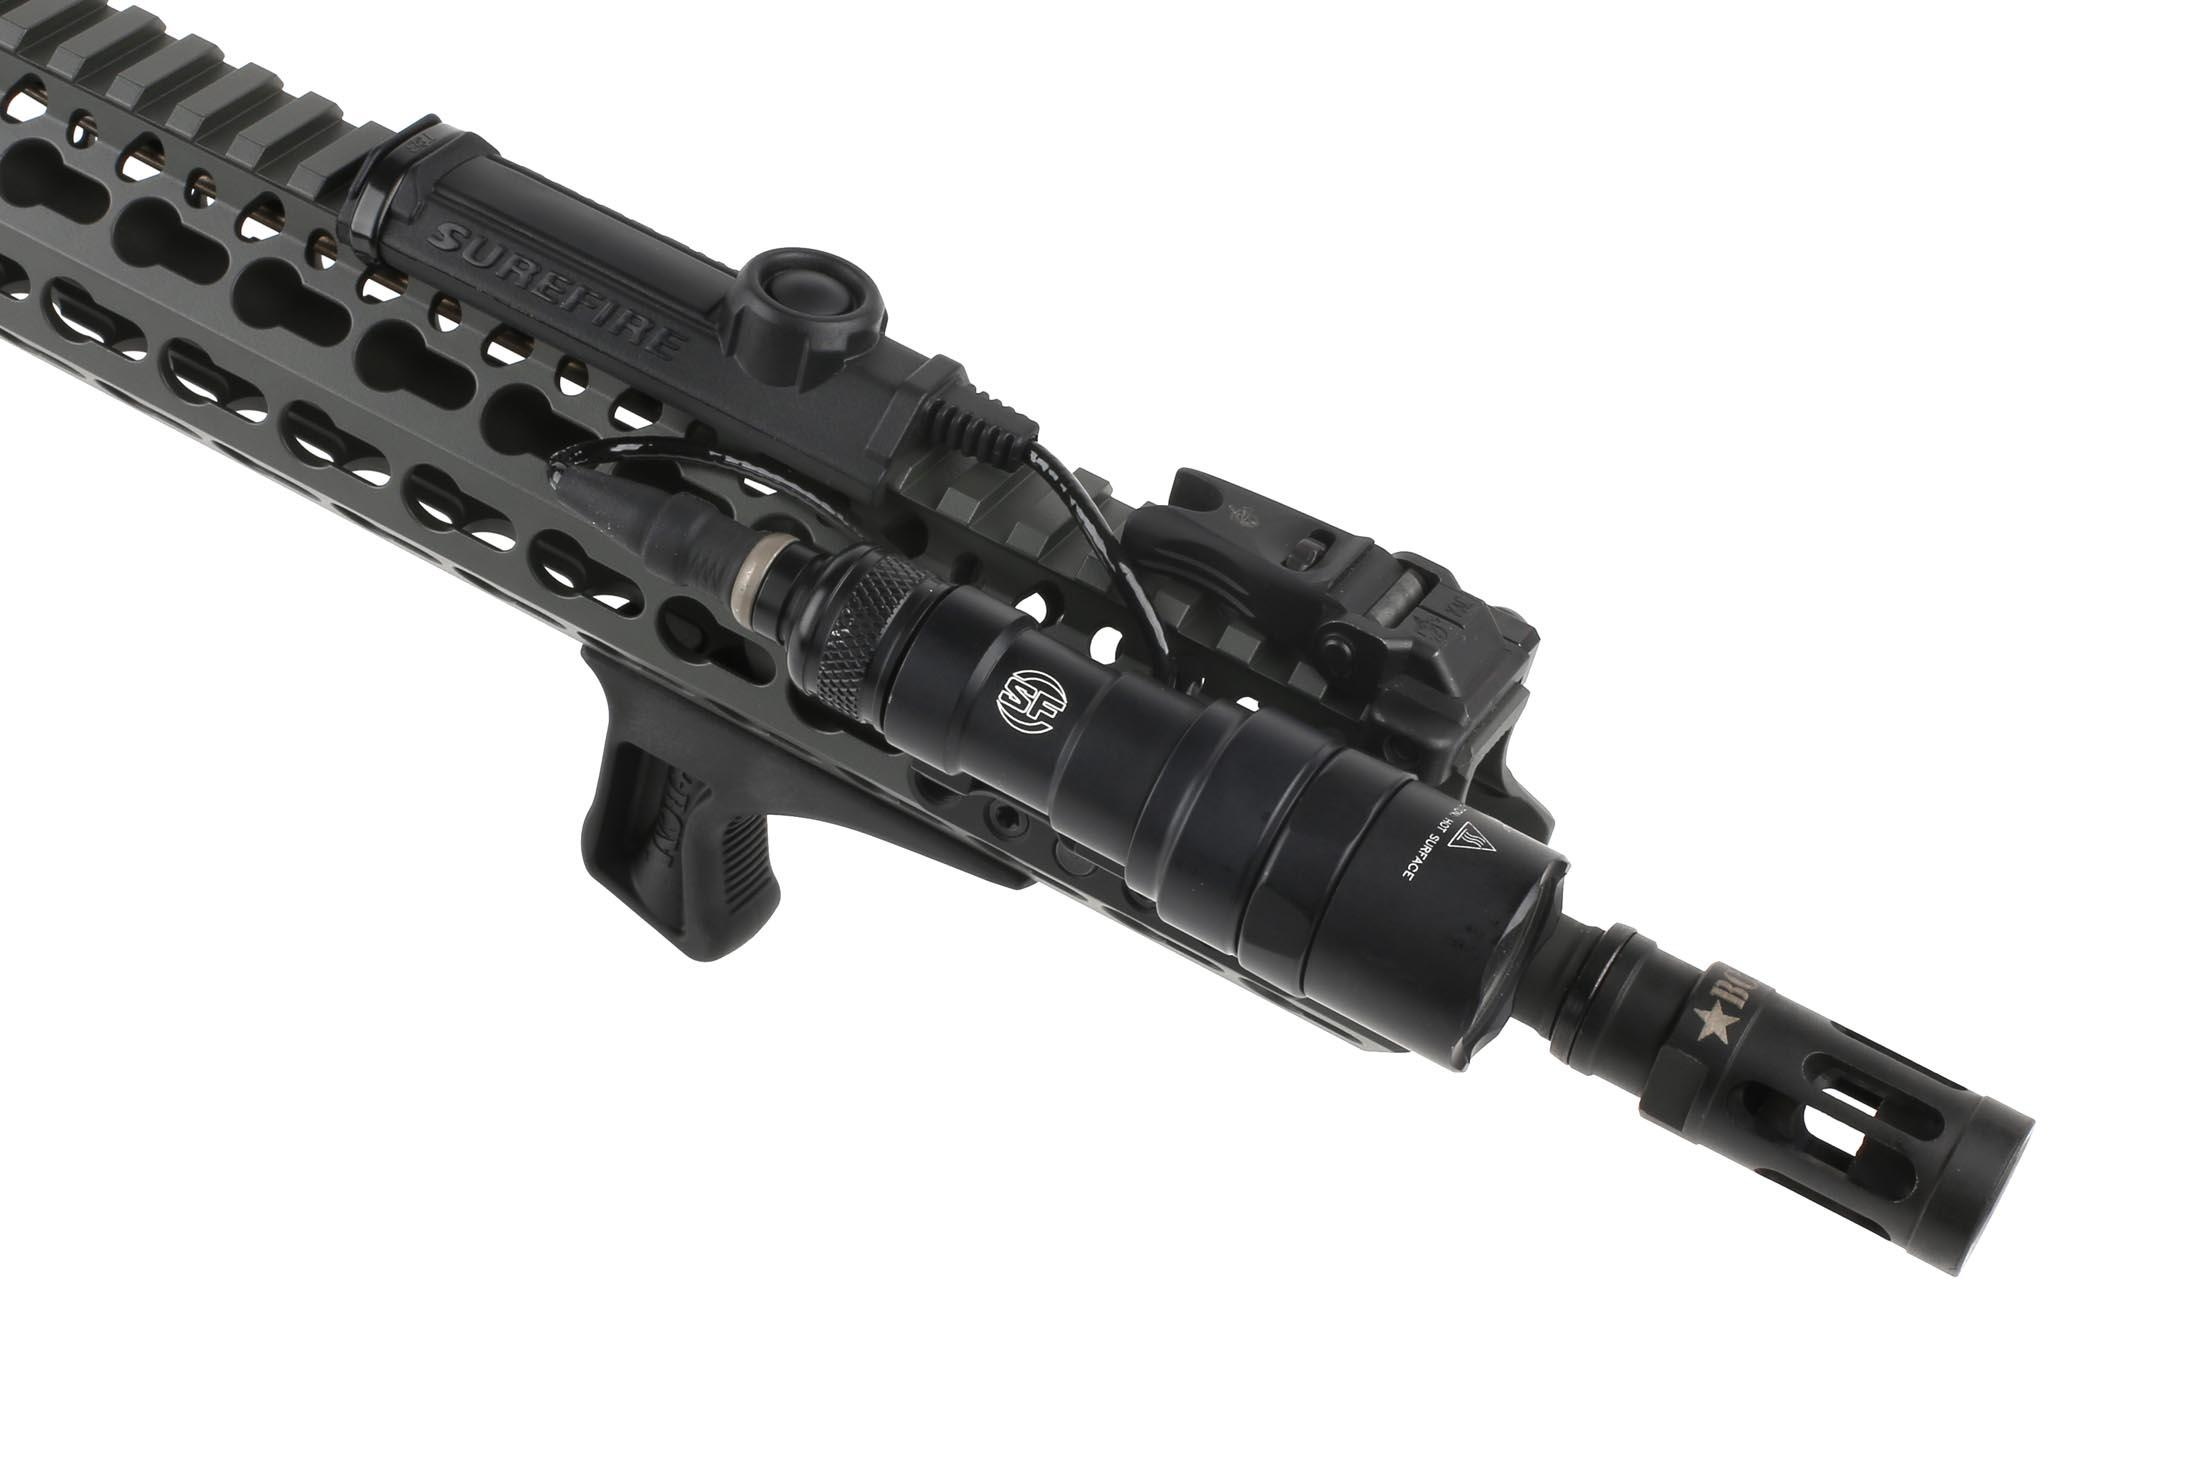 The Bravo Company BCM Gunfighter KeyMod angled Grip attached to an ar15 handguard